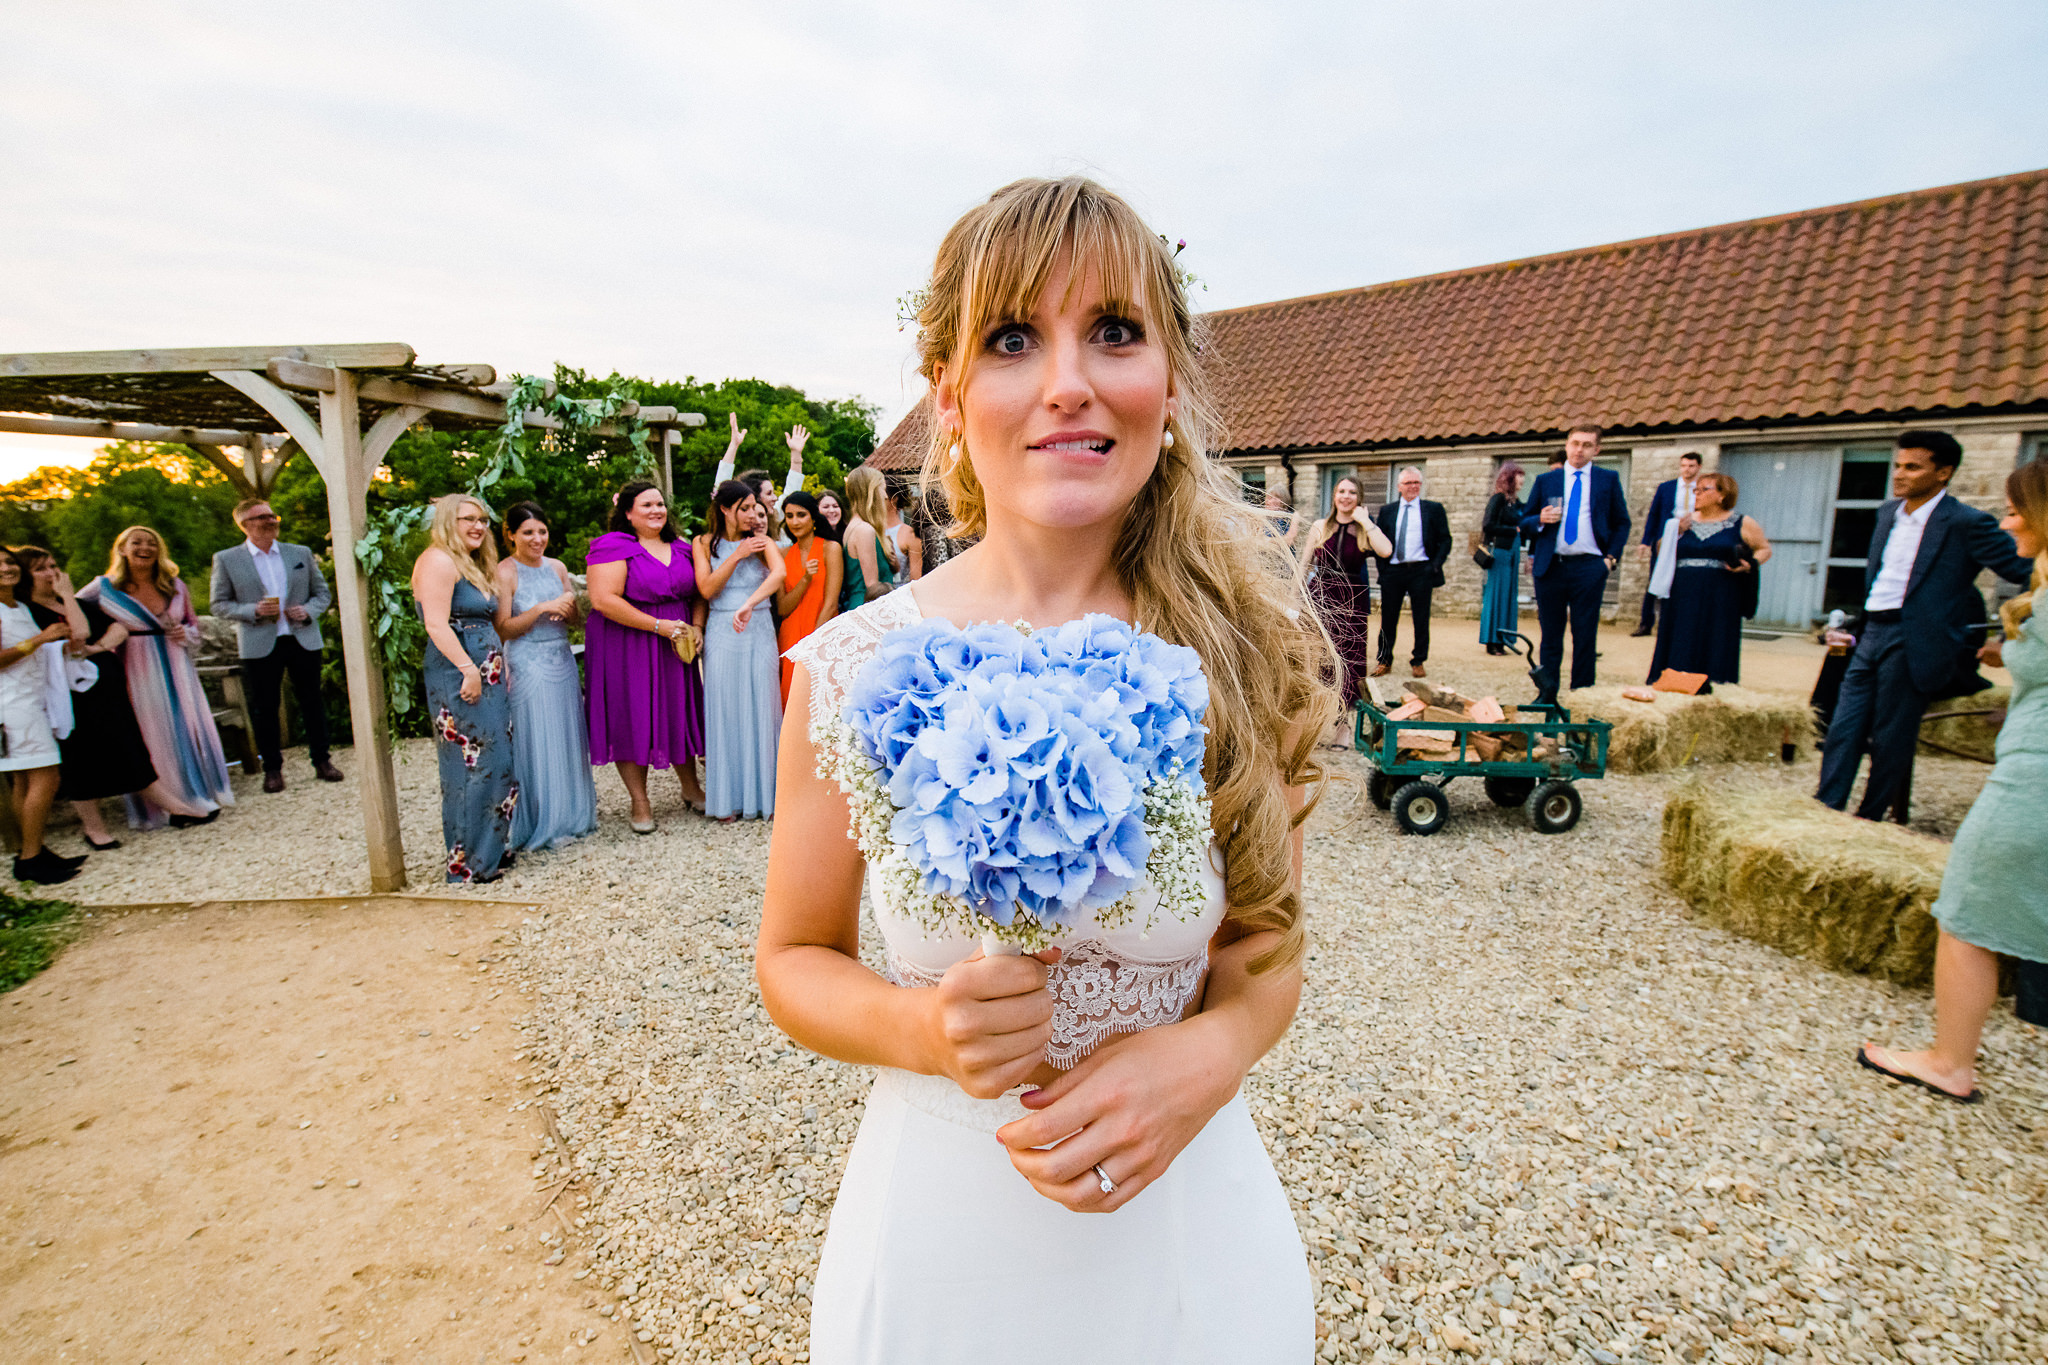 Bride hesitates before throwing bouquet - photo by Rich Howman